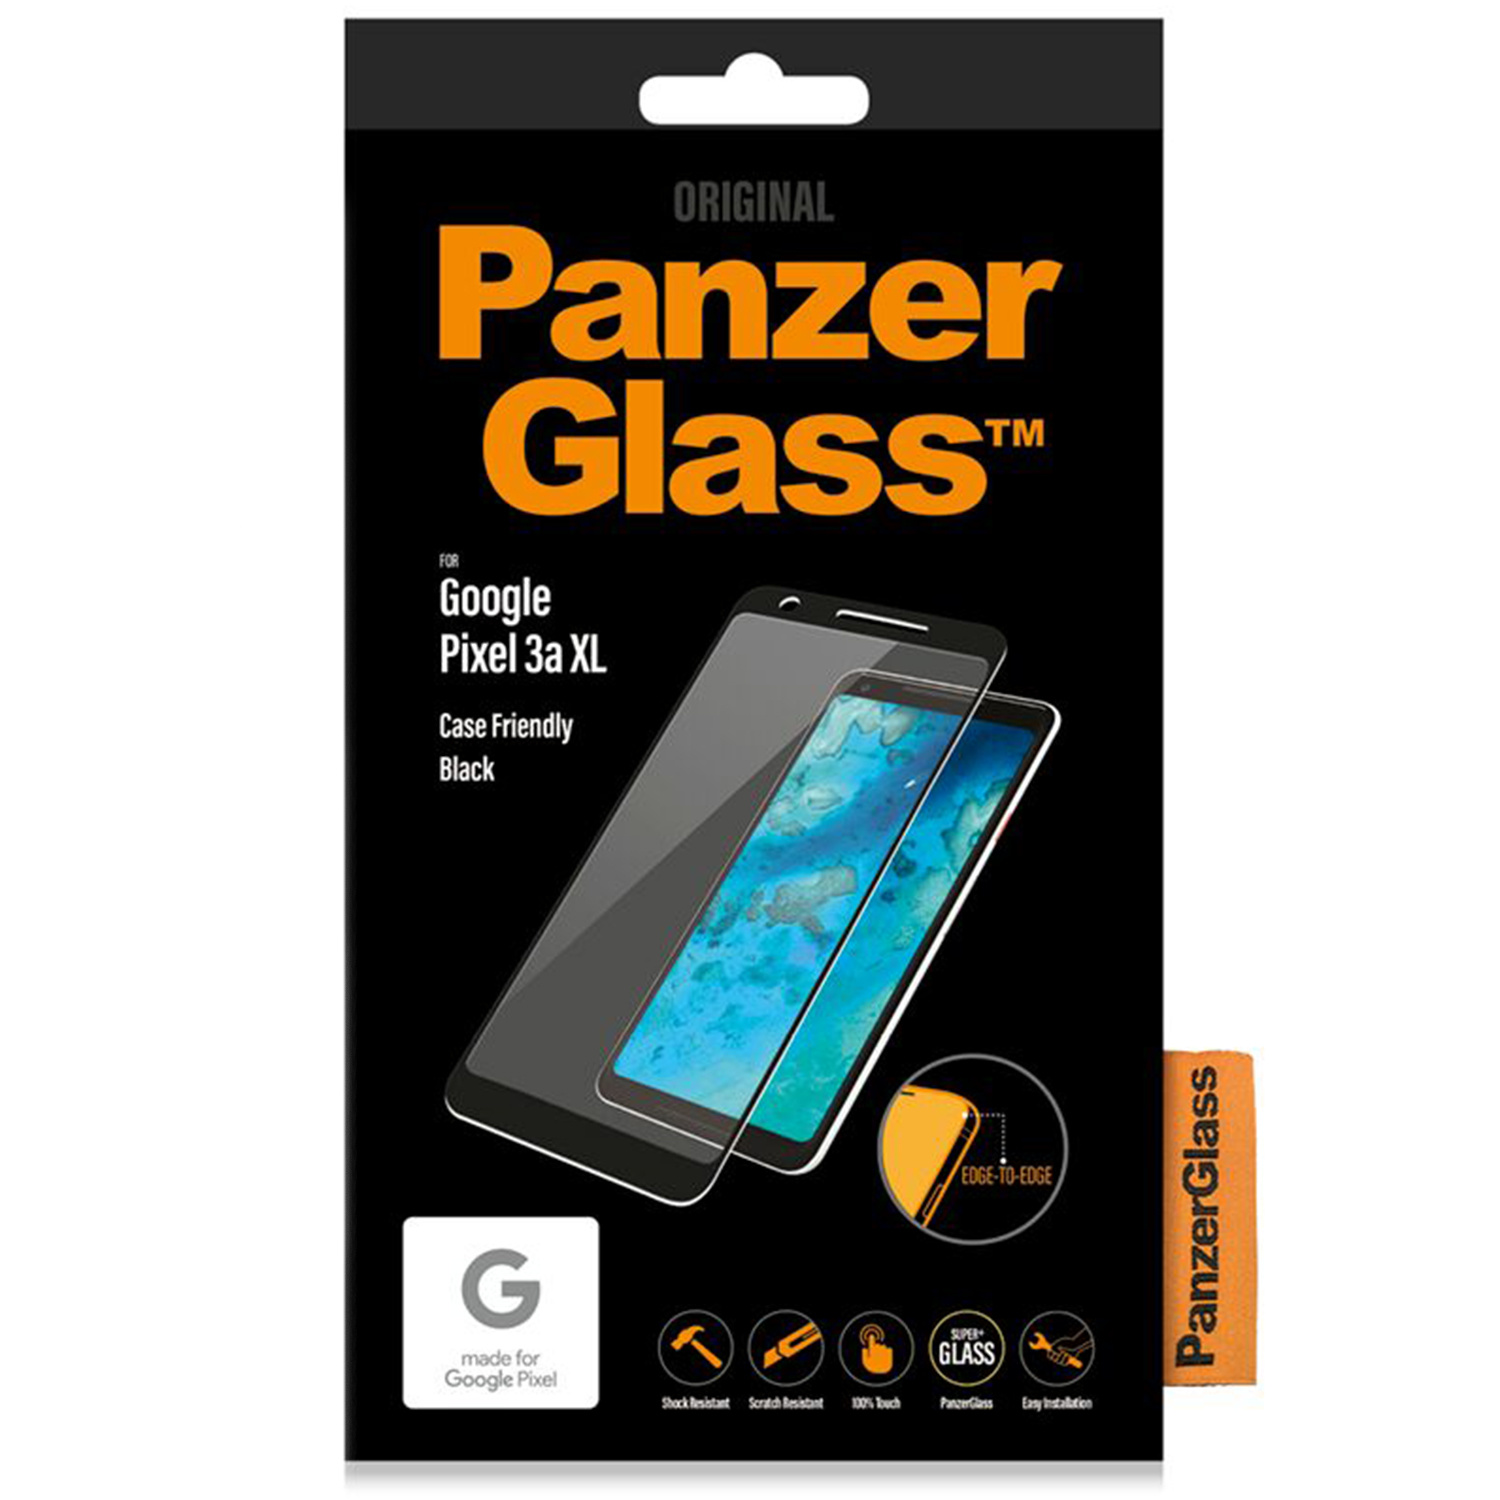 PanzerGlass Case Friendly Screenprotector voor de Google Pixel 3a XL - Zwart